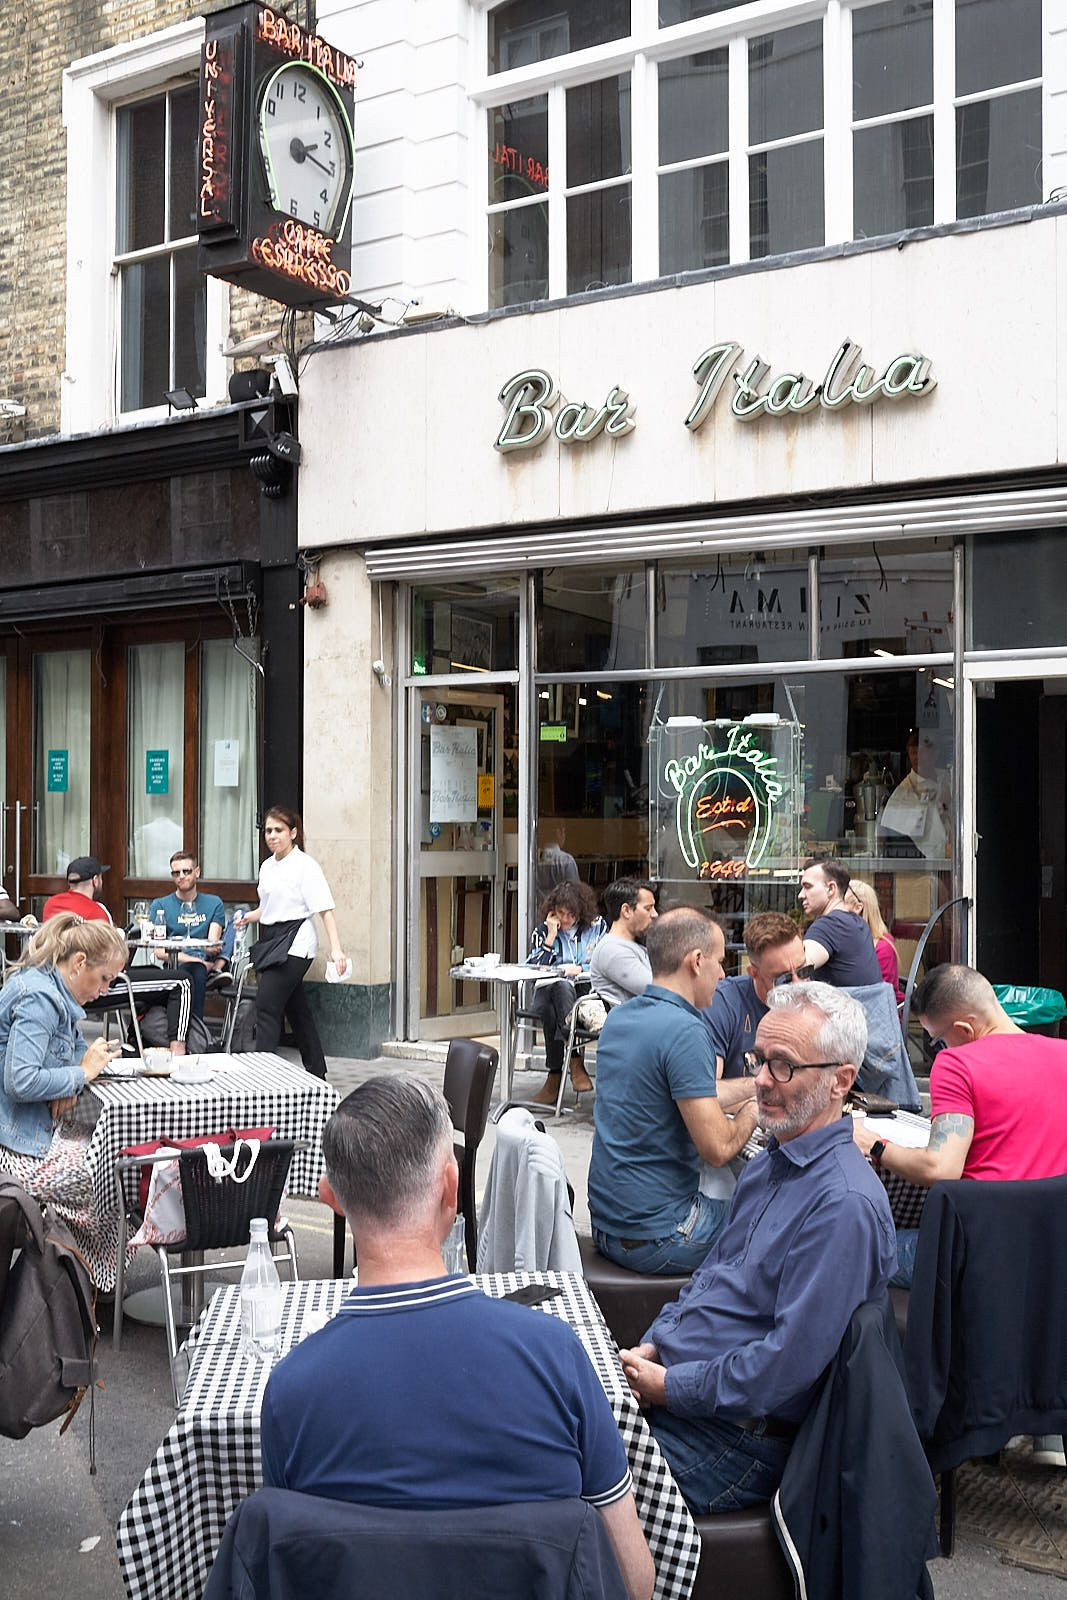 One of London's most famous cafes, Bar Italia, with customers occupying a new, extended terrace after lockdown restrictions were eased on hospitality venues in London